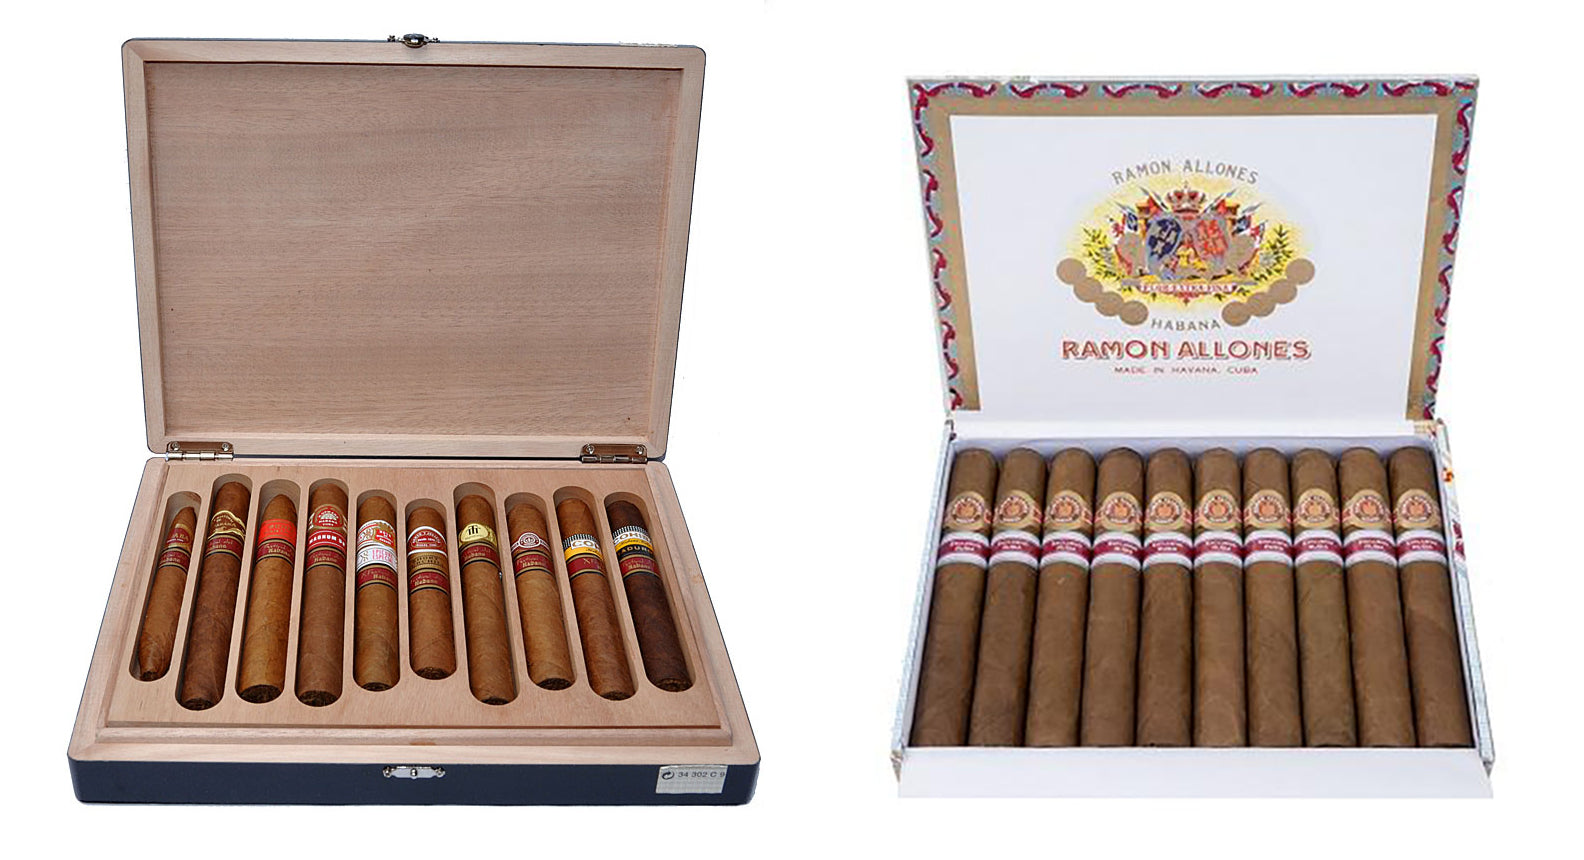 SELECCION X FEST. 2008 - COMMEMORATIVE CASE OF 10 cuban cigars and ramon allones hermitage cigar (ex rusia 2017) cuban cigars for sale online egm cigars